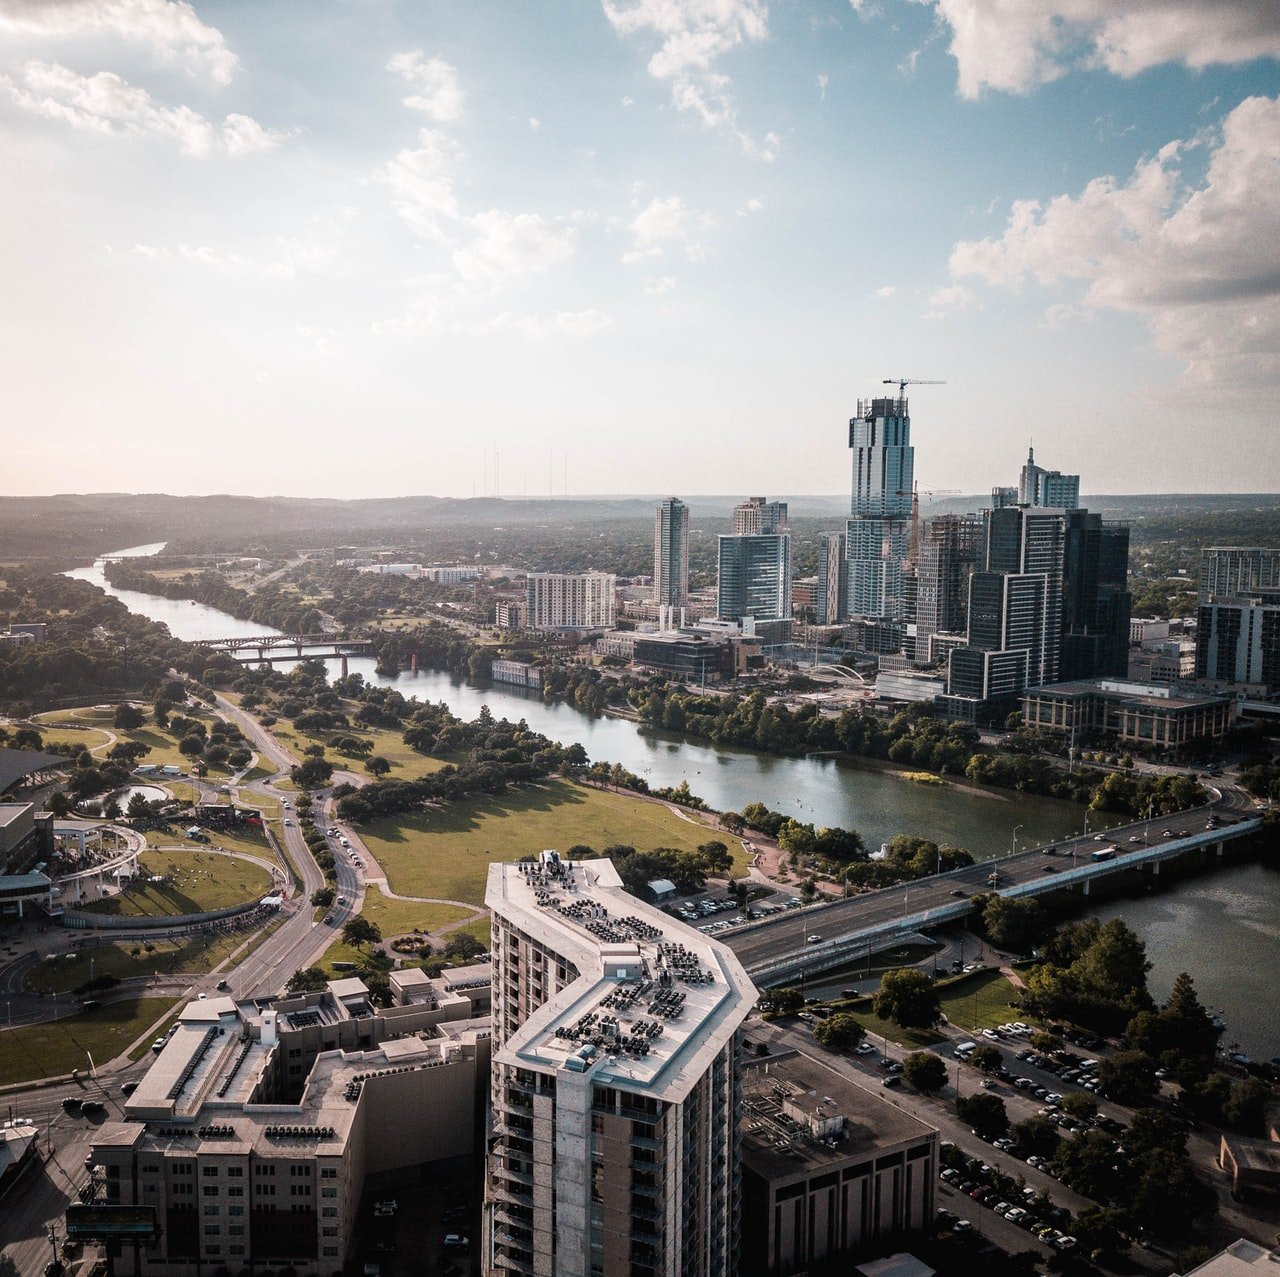 Things to Consider When Buying In Austin